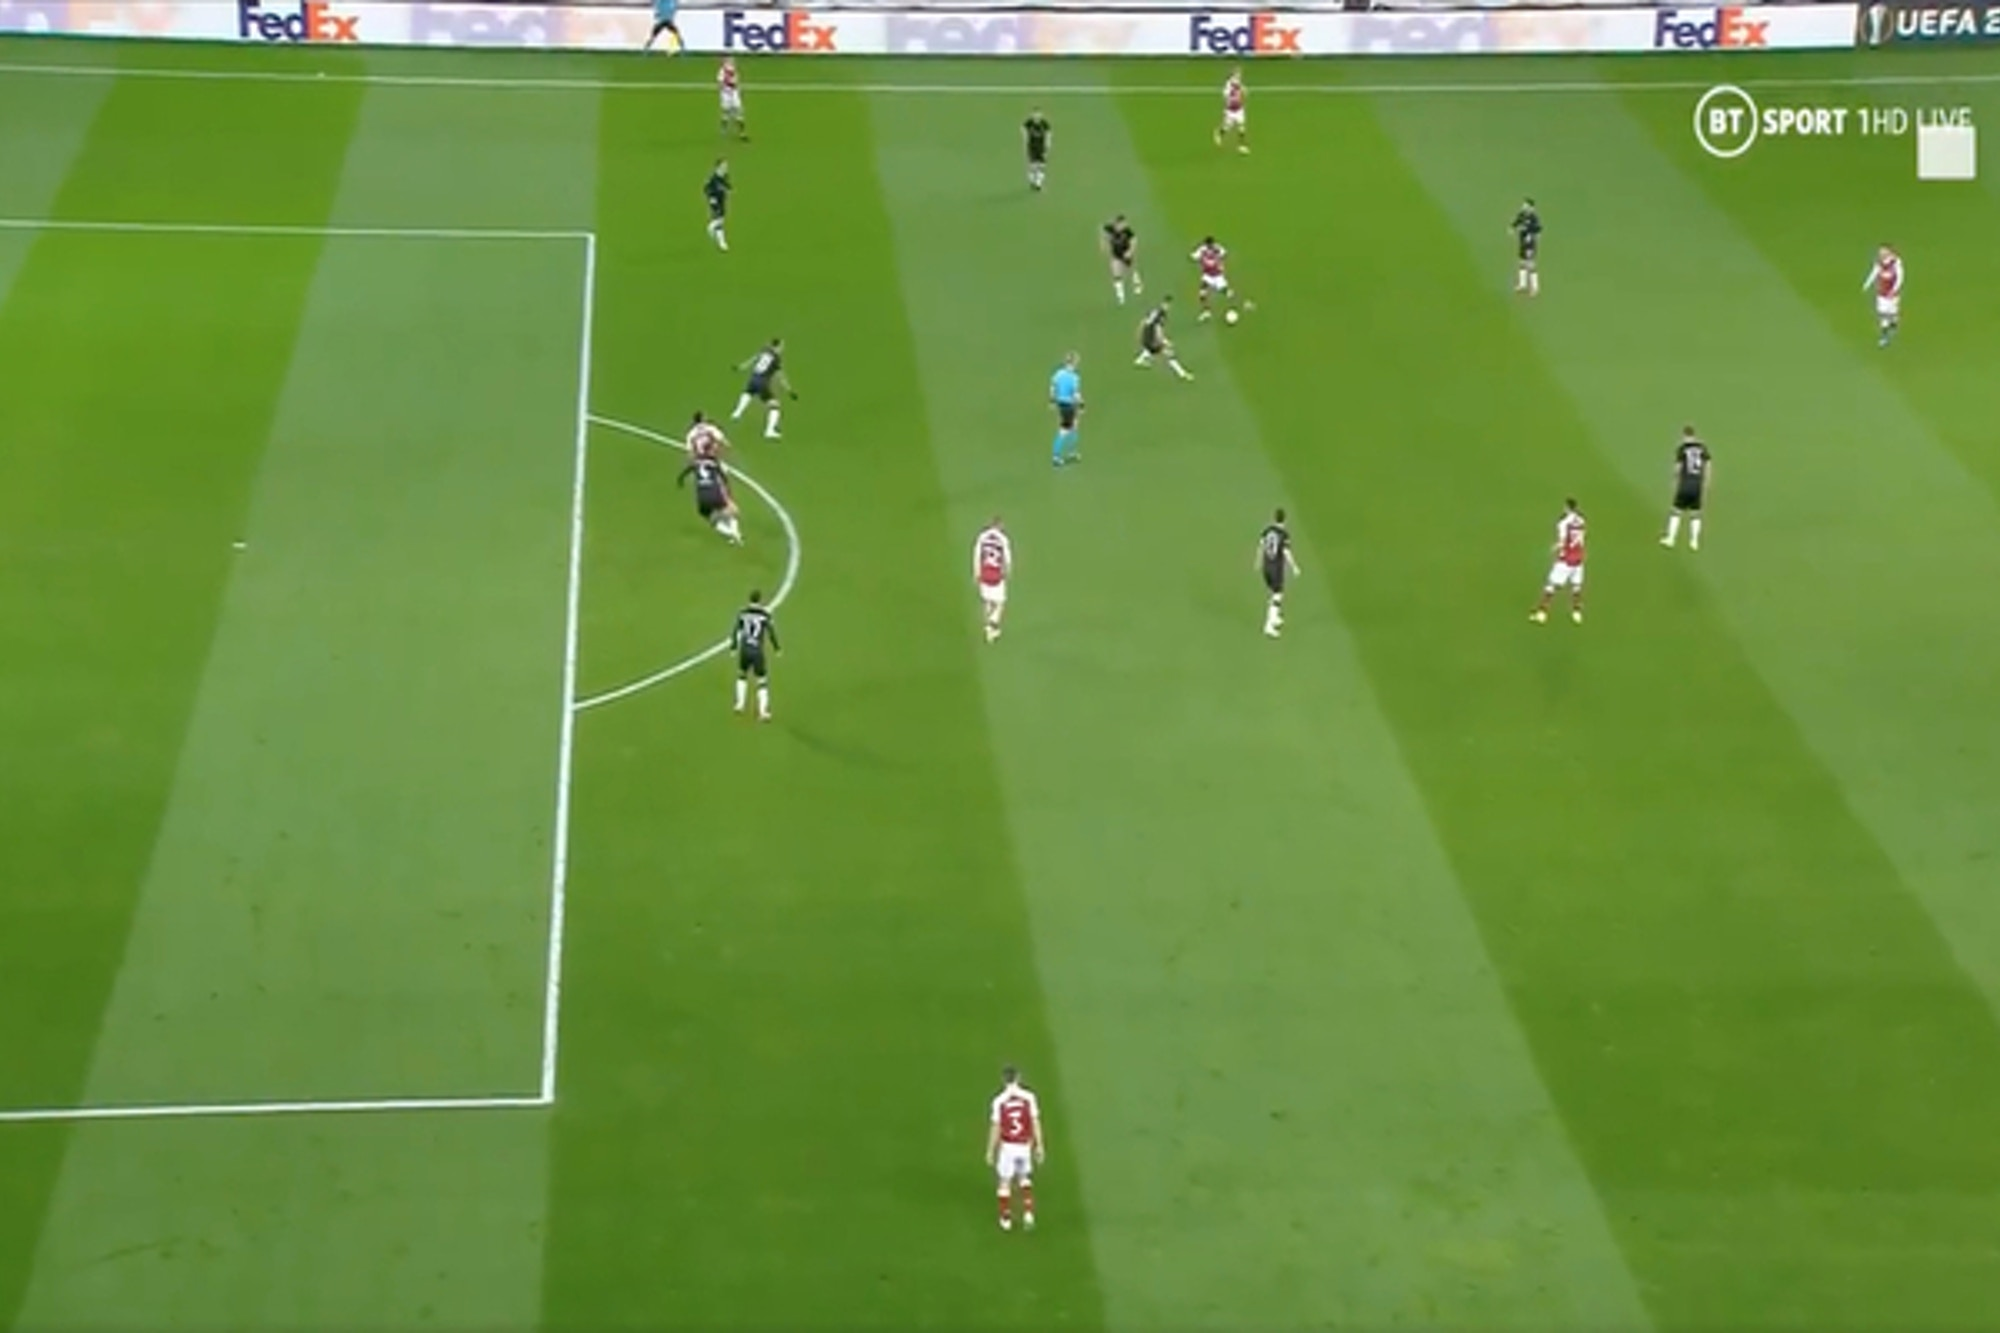 Video: Bukayo Saka produces amazing assist as Aubameyang lobs Arsenal into lead against Benfica